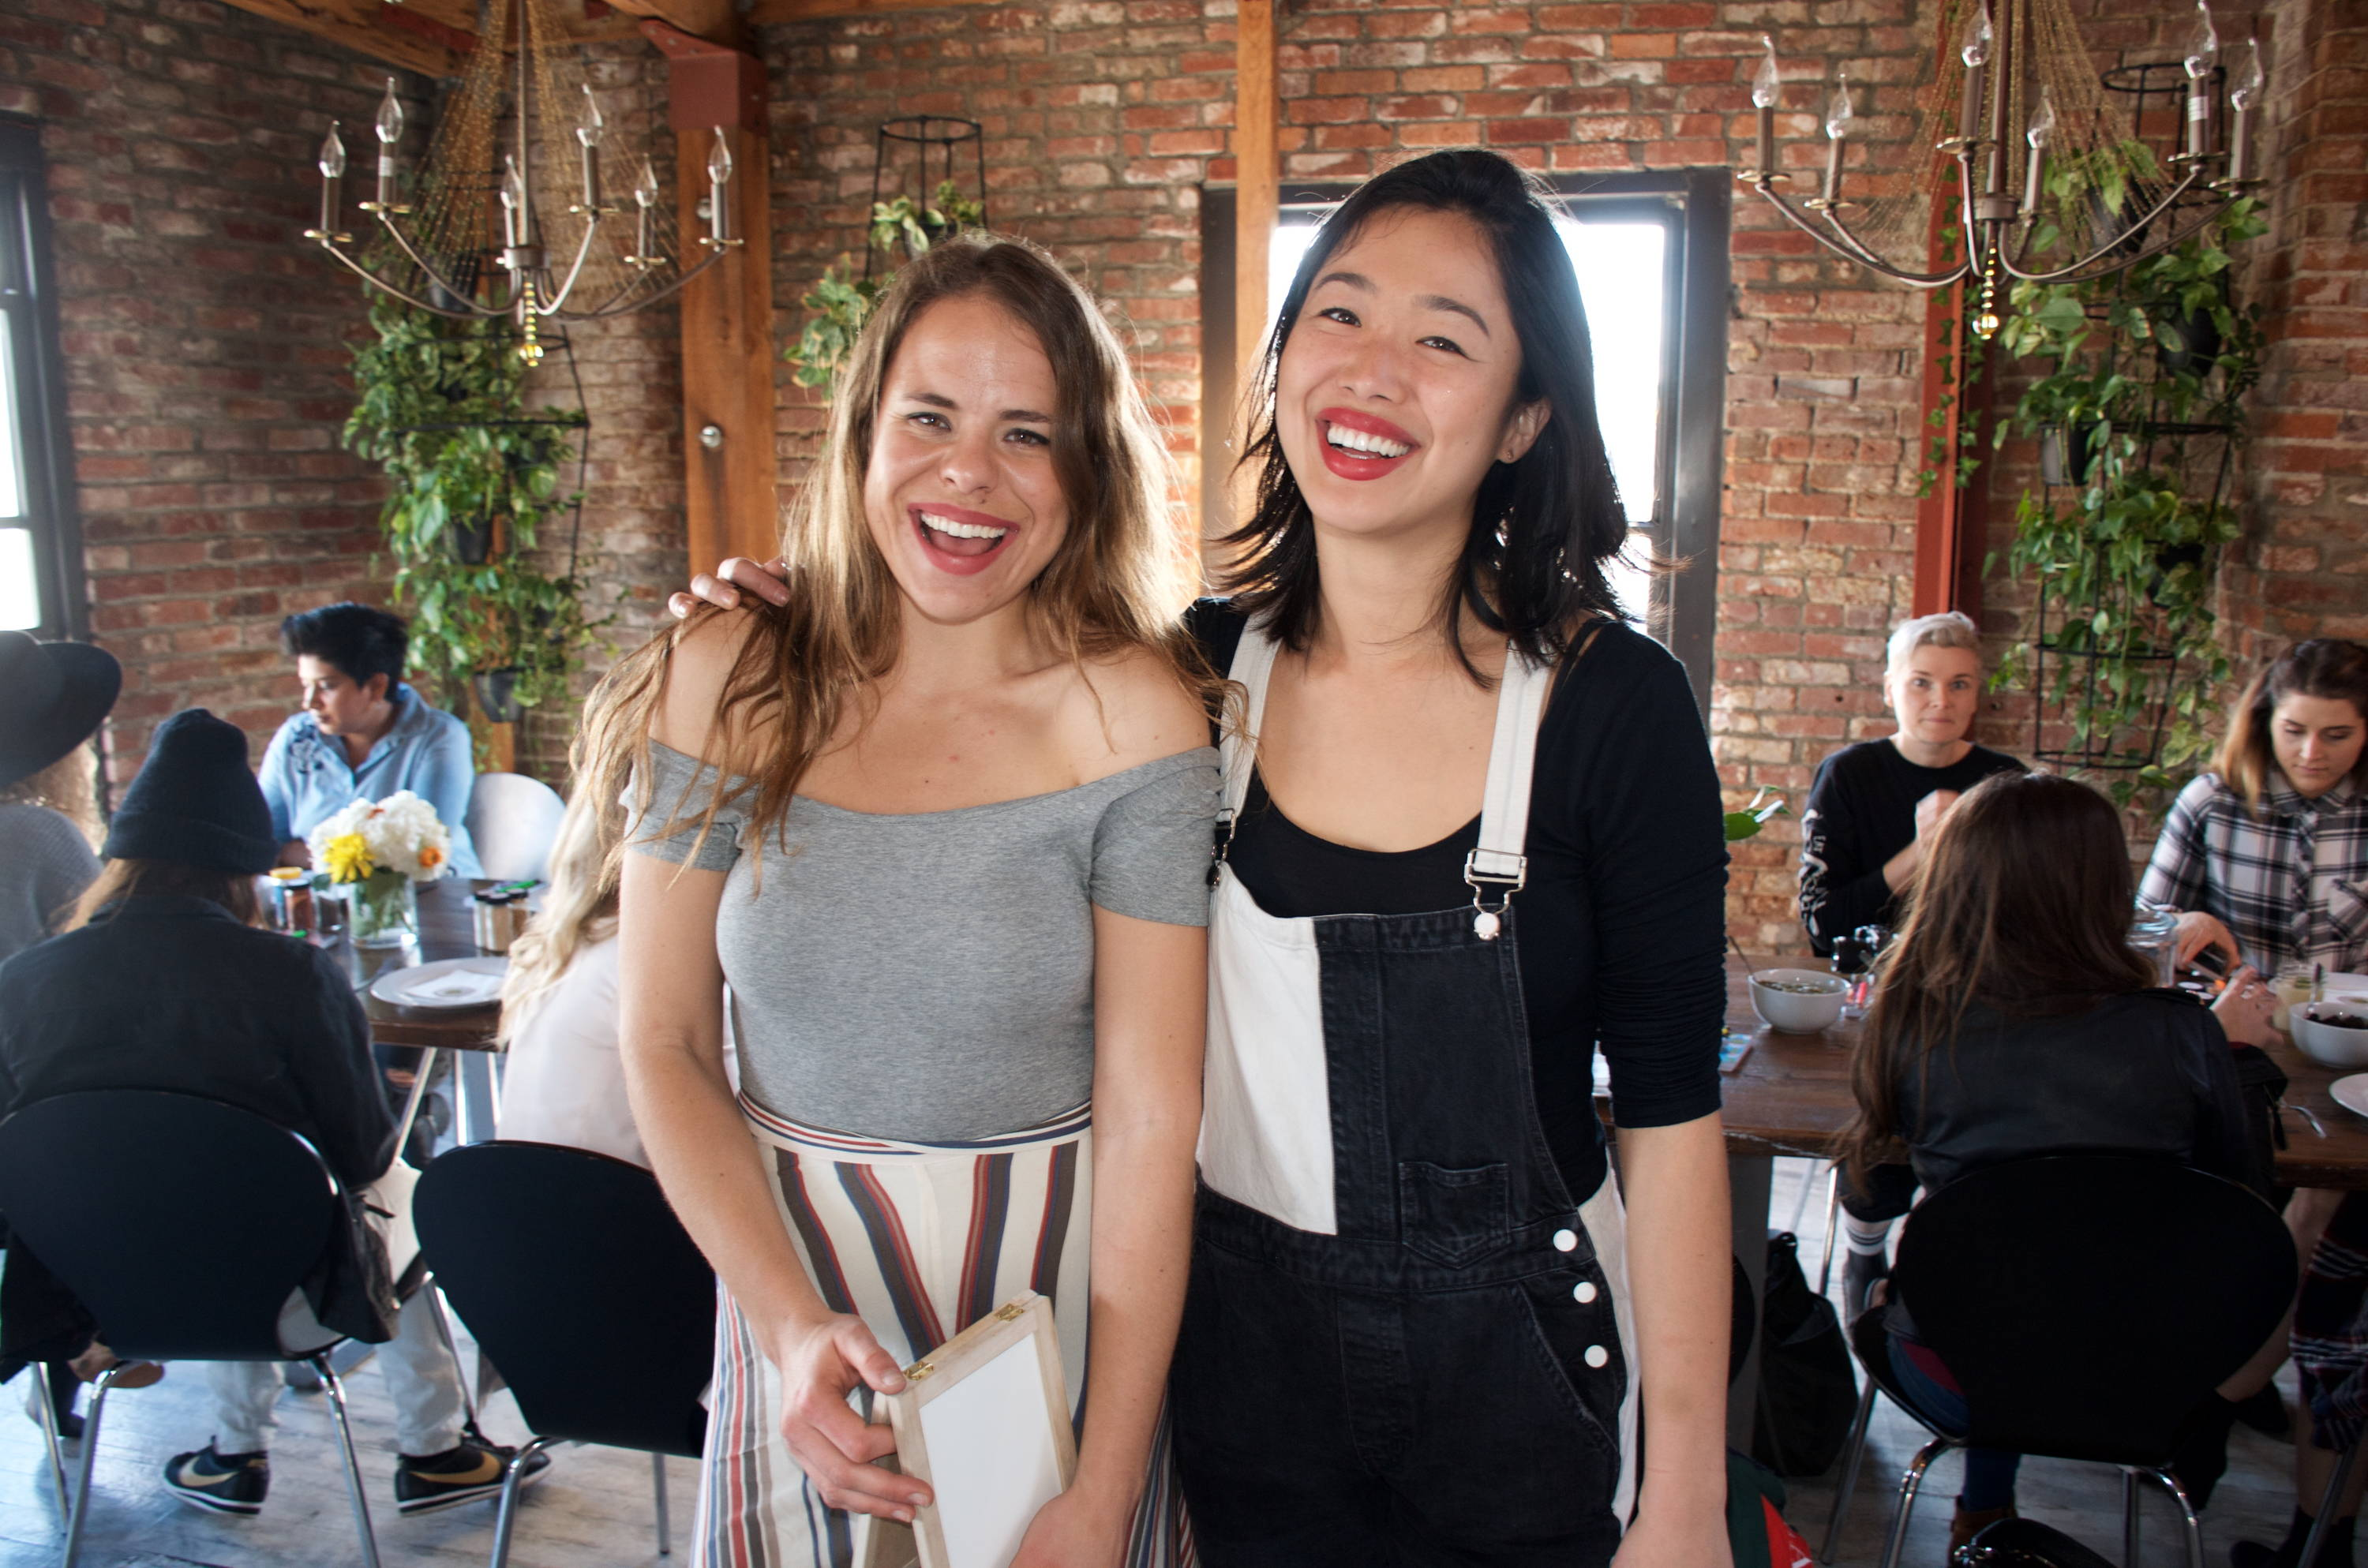 Pulp Pantry co-founders, Ashley Miyasaki and Kaitlin Mogentale